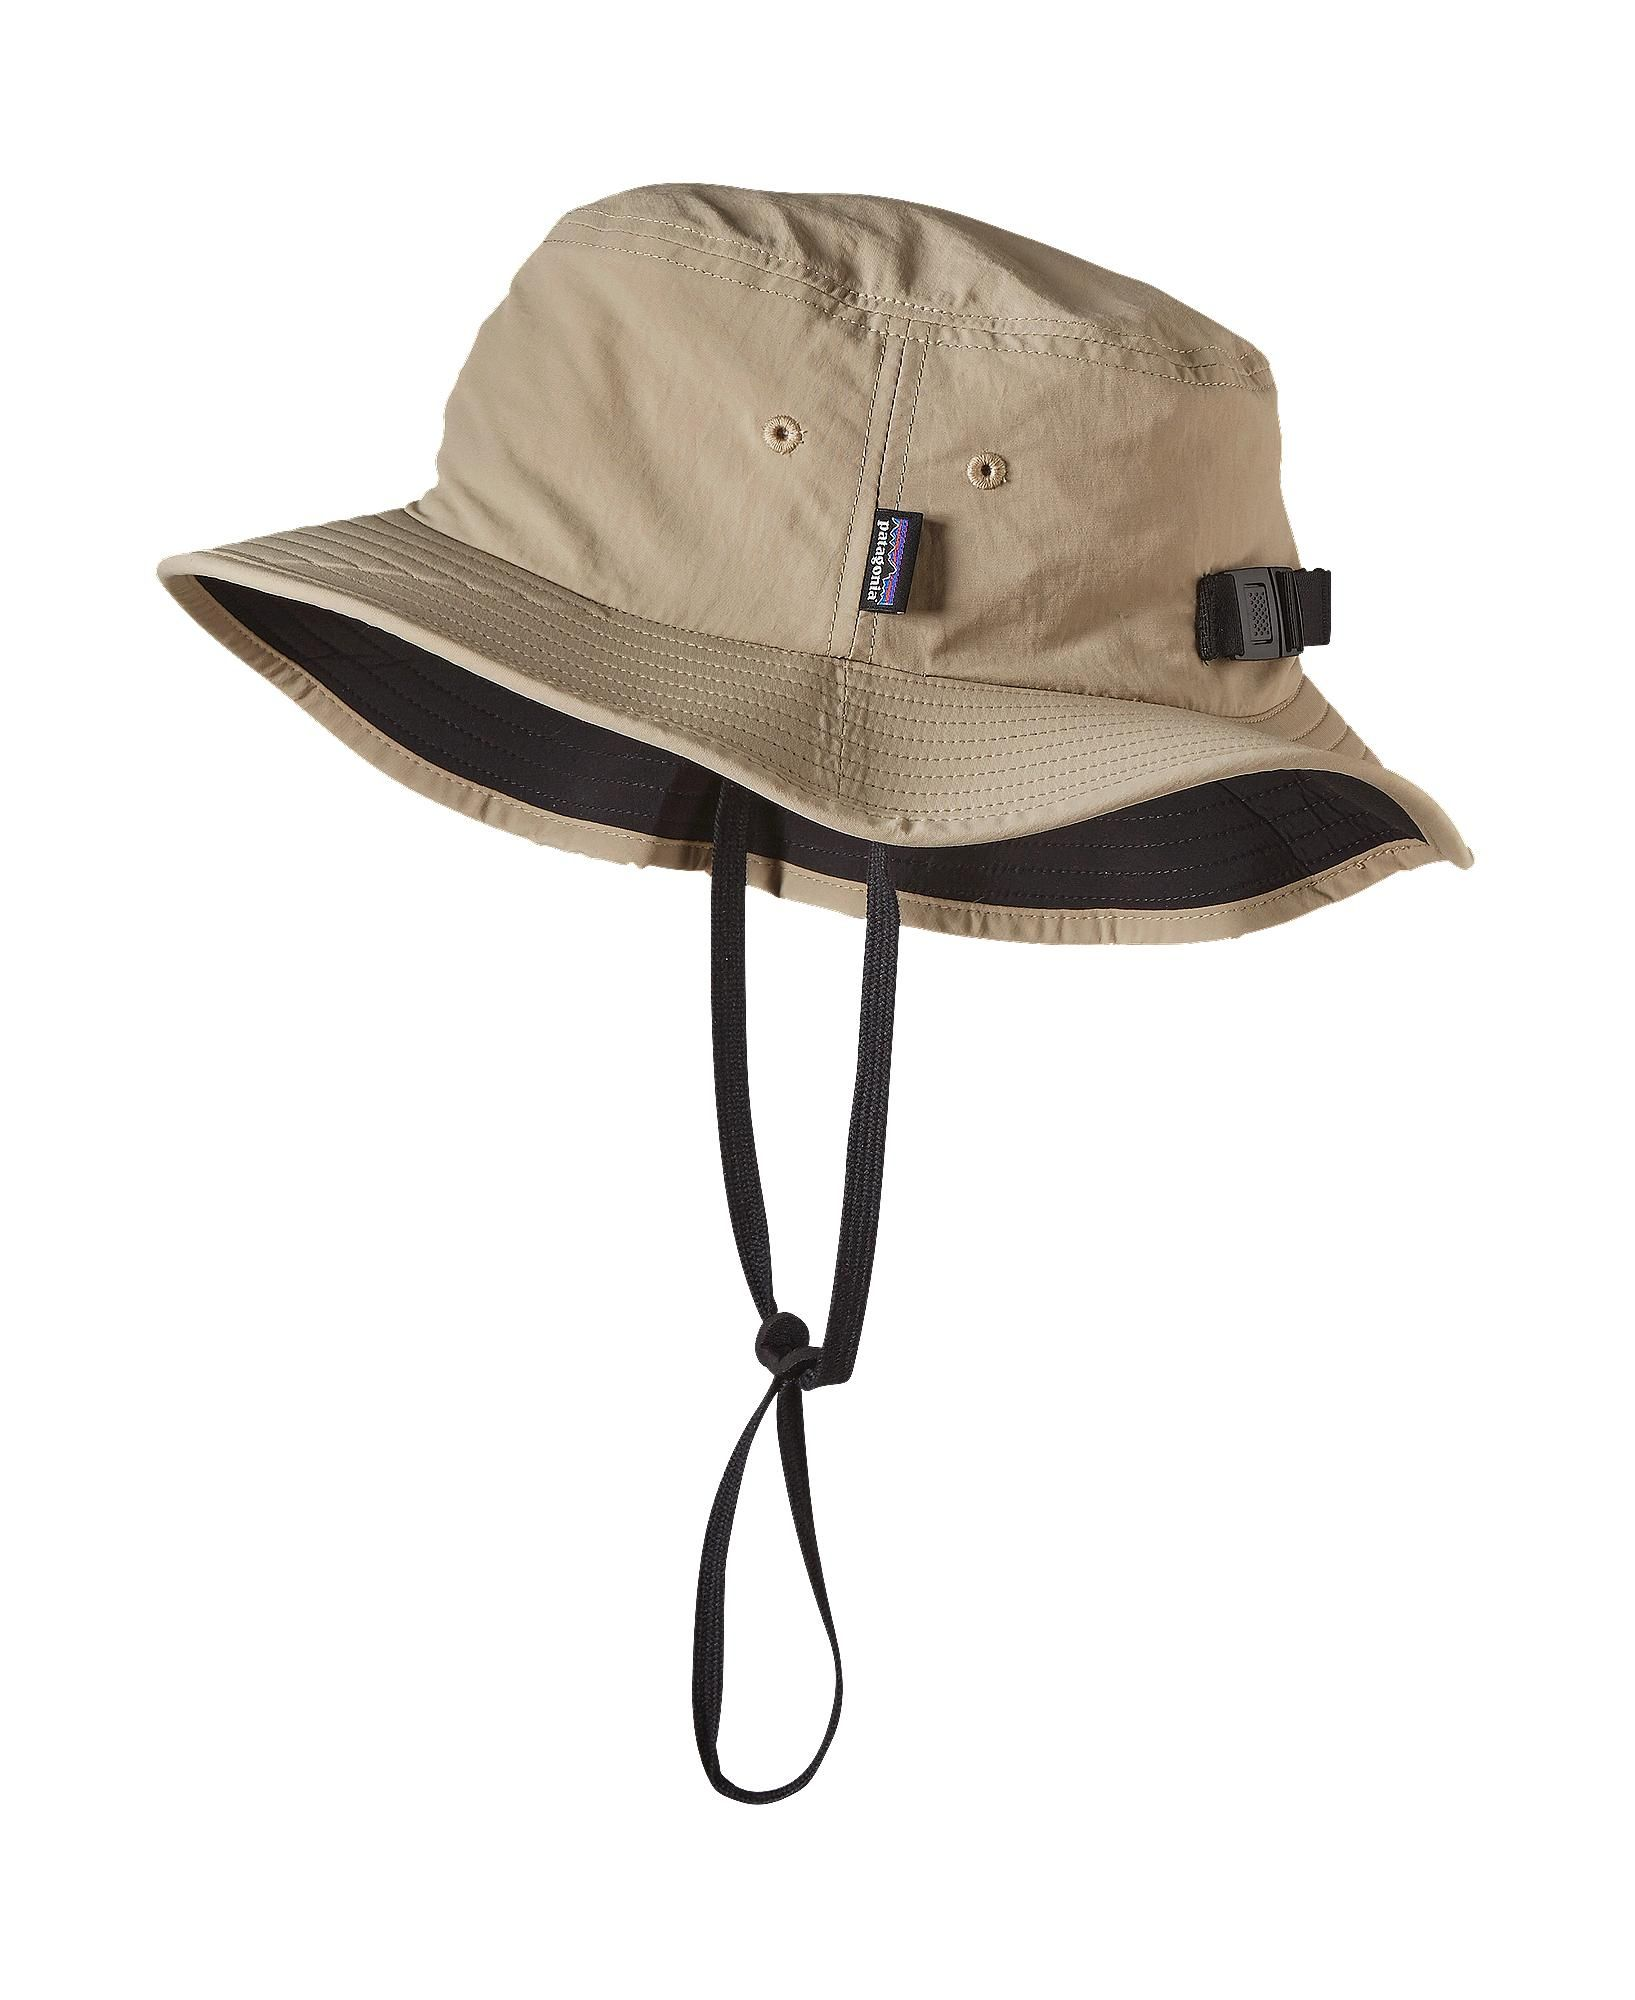 The Patagonia Boys  Trim Brim Hat is a full-brimmed sun hat that provides  50 UPF sun protection and has a nonchafing c407db58f2c